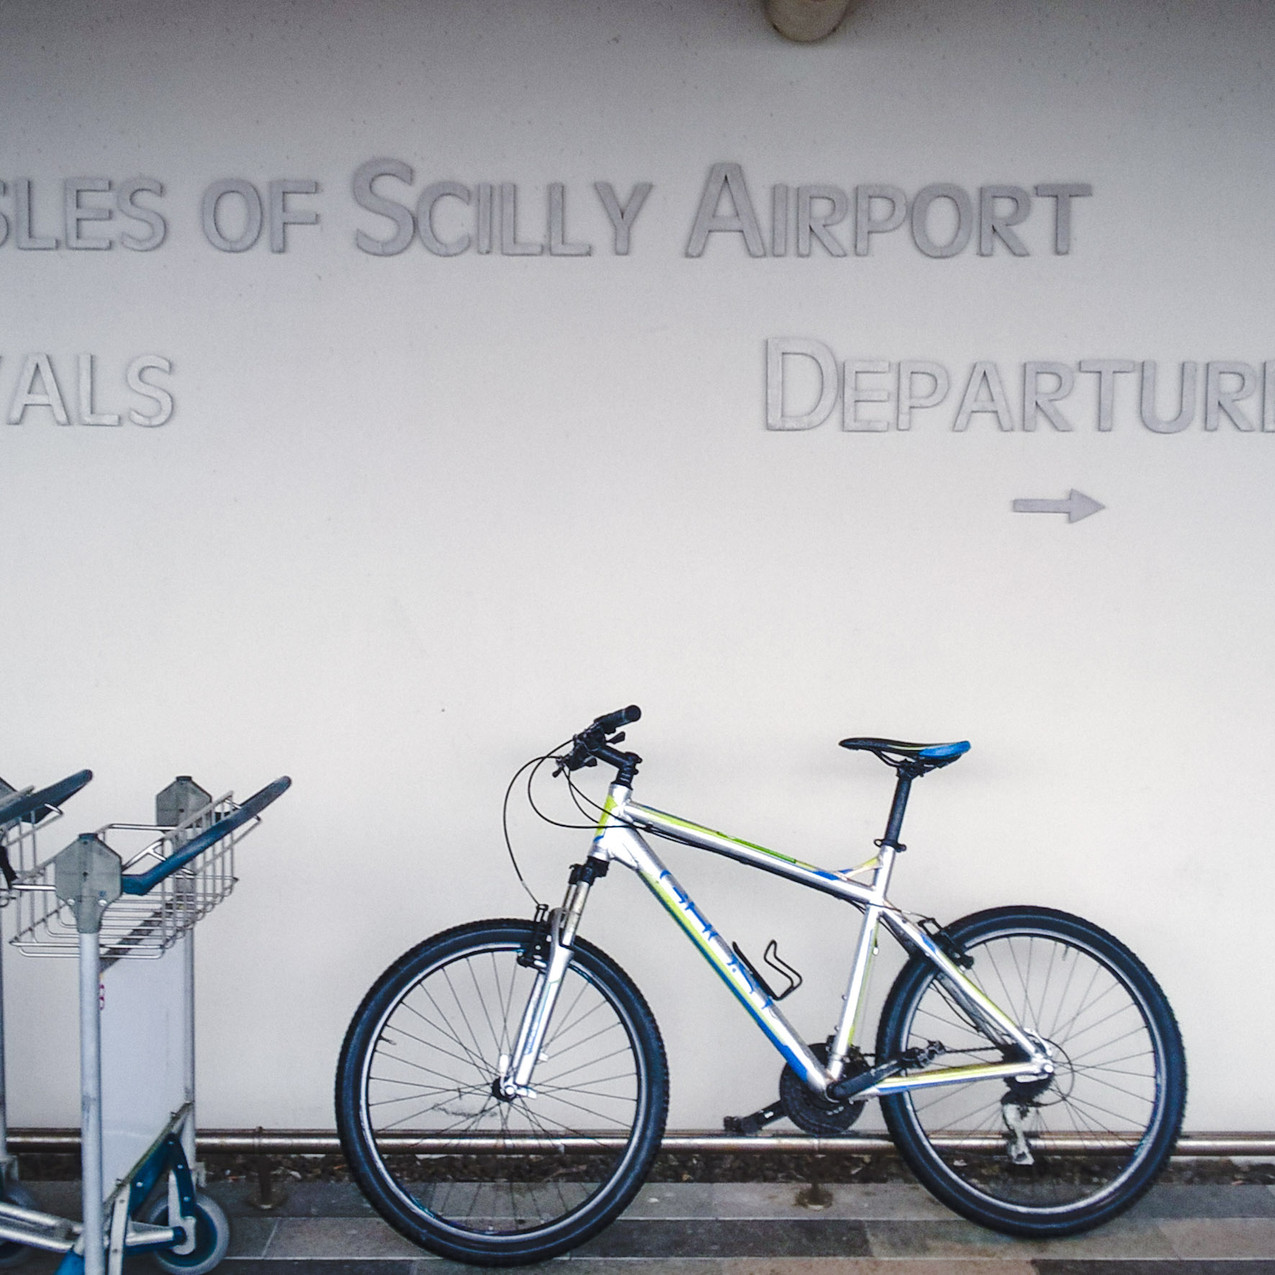 Isles of Scilly Airport